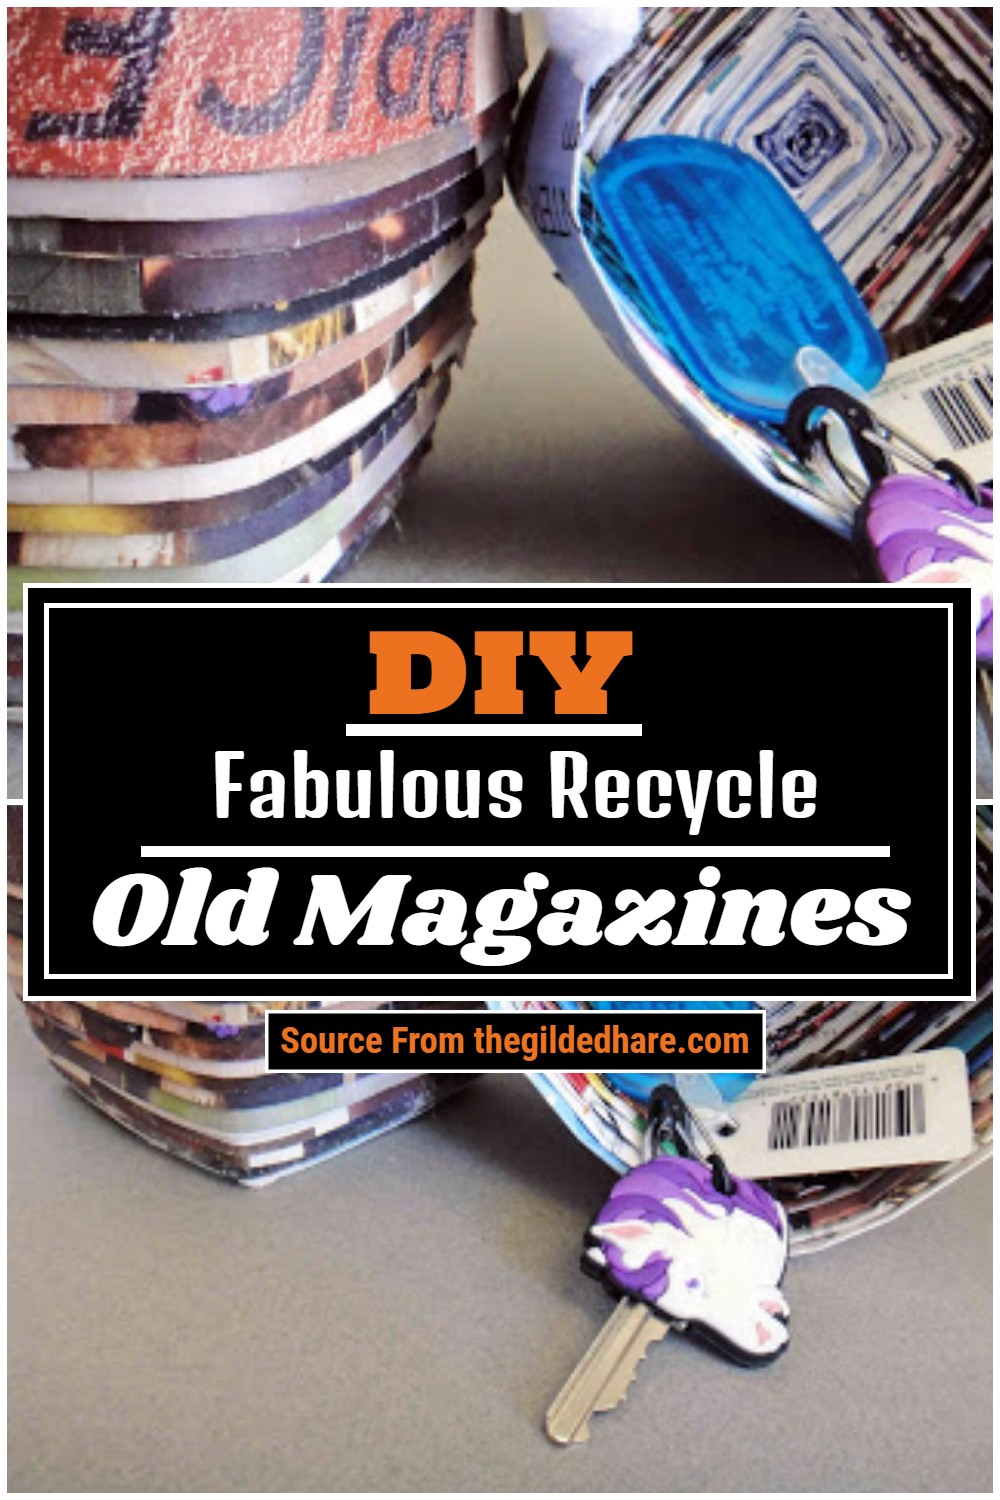 Fabulous Recycle Old Magazines